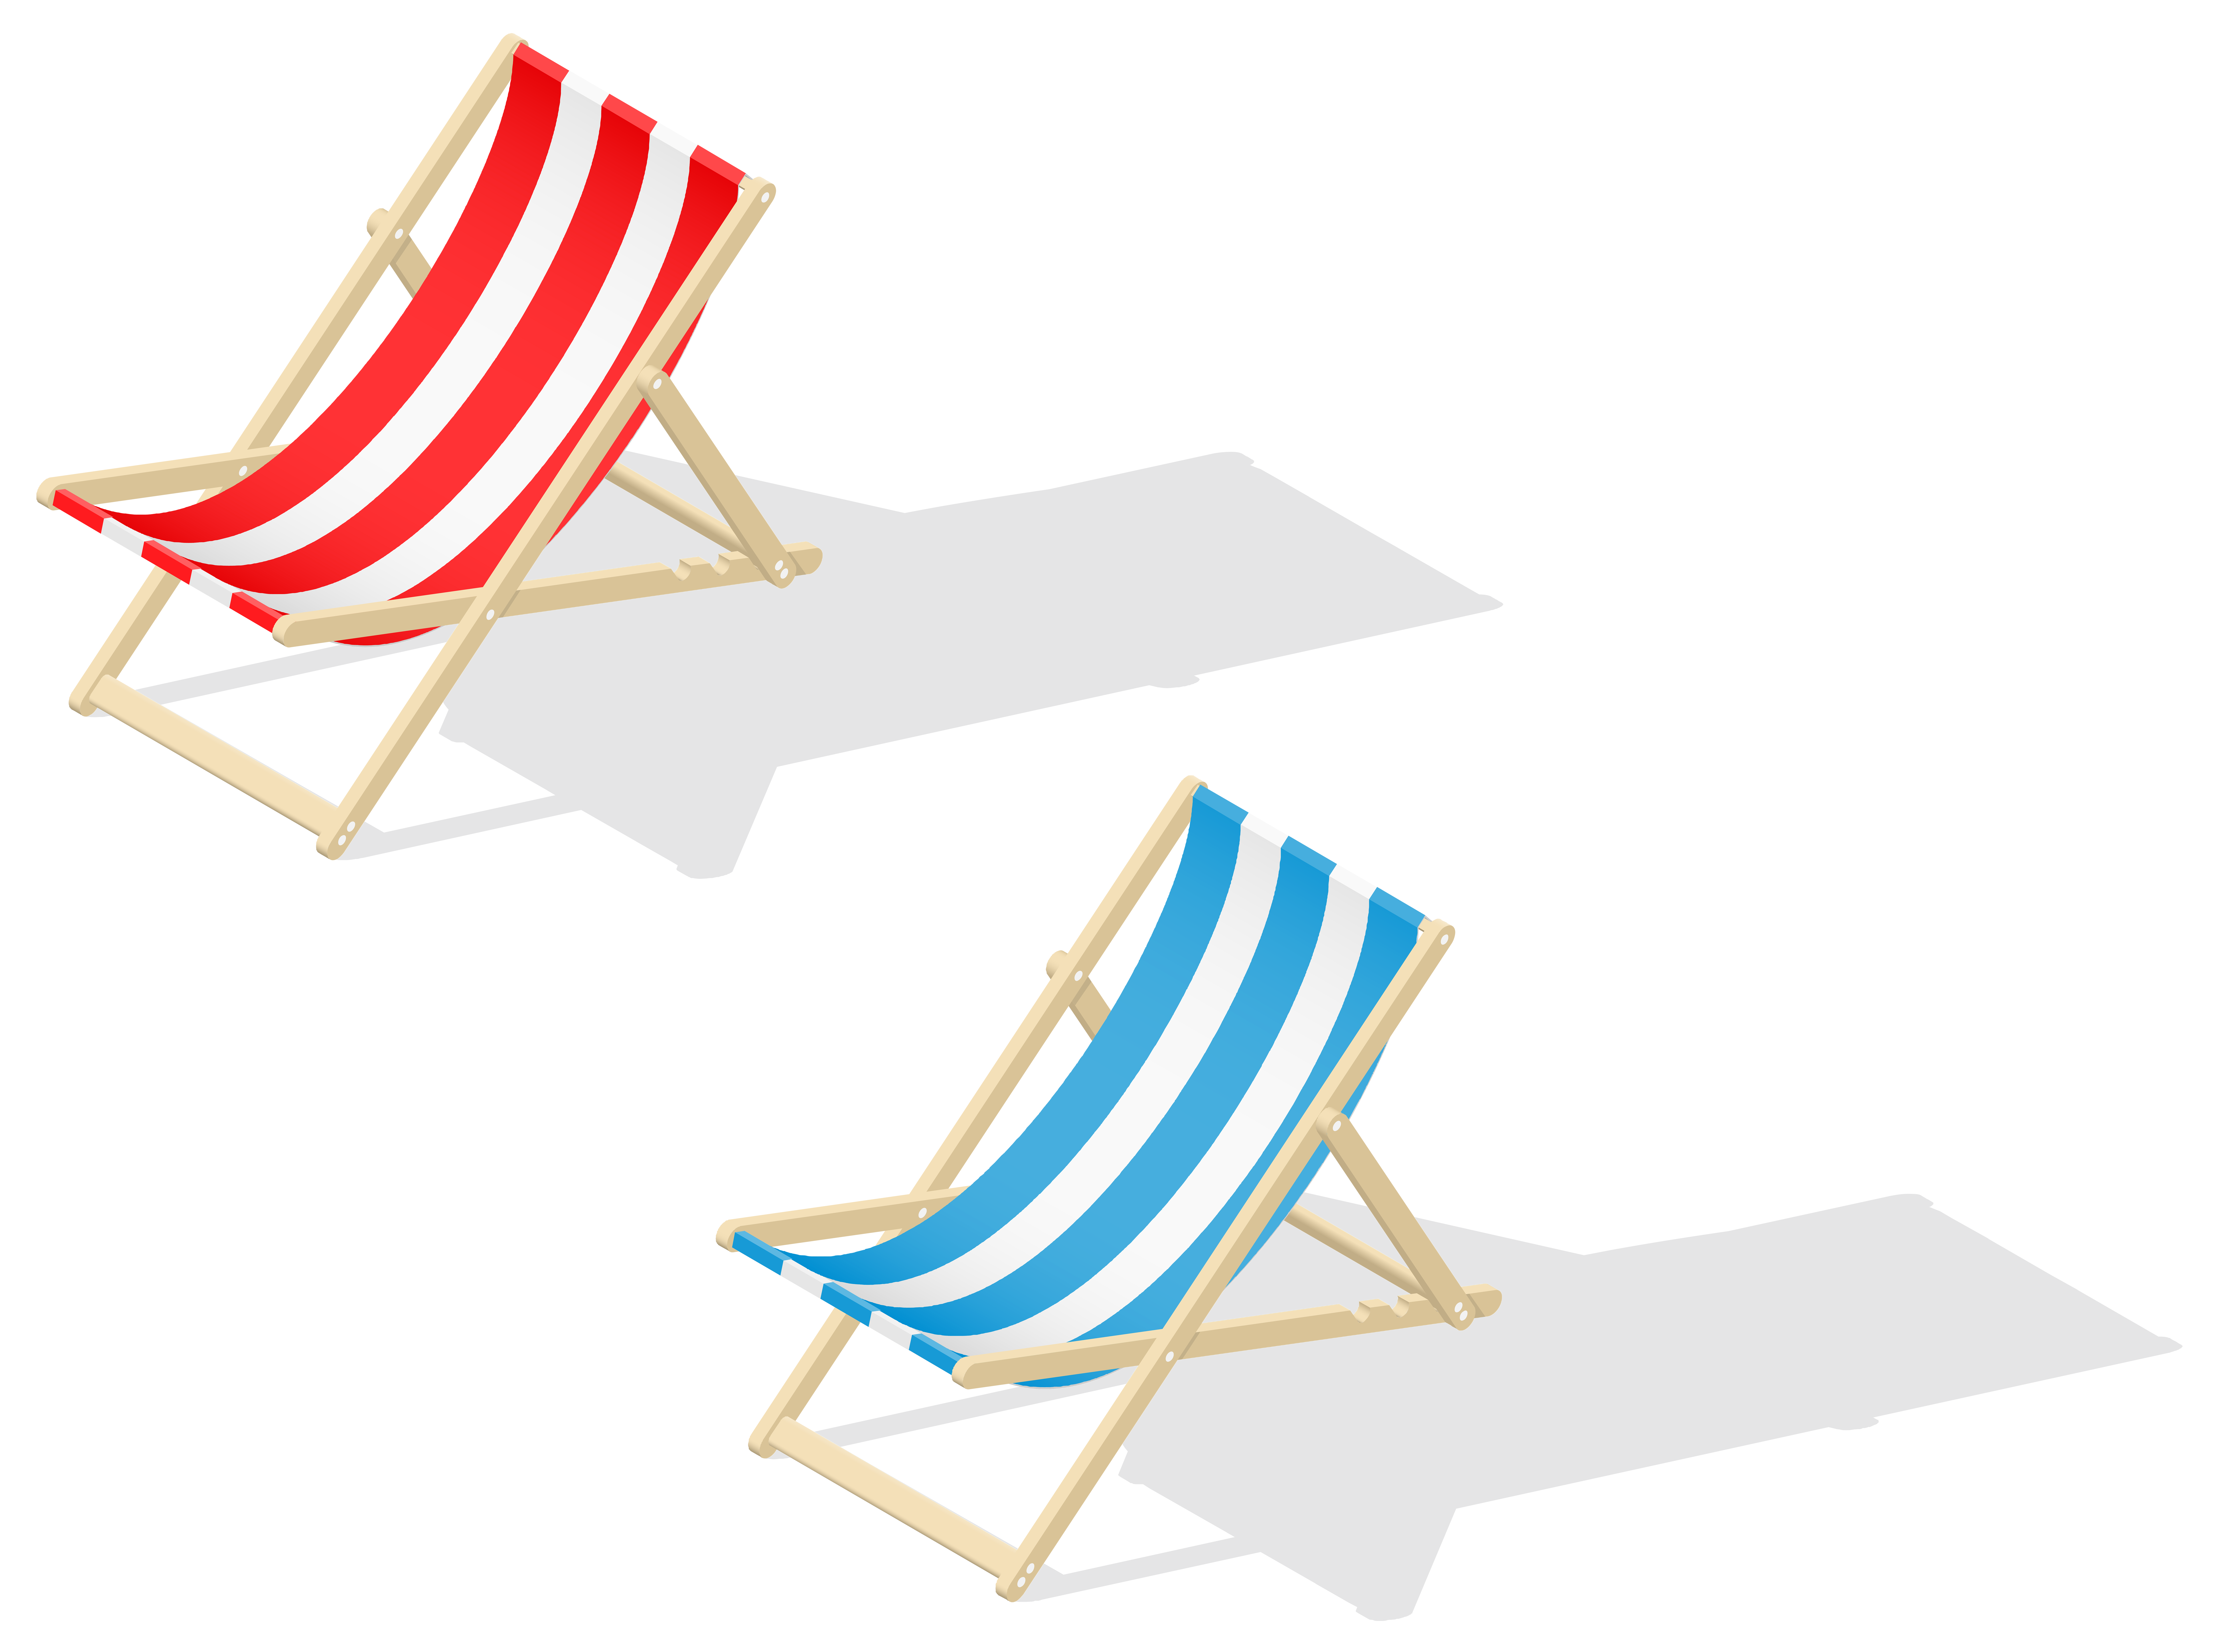 Beach Background Clipart | Free download on ClipArtMag